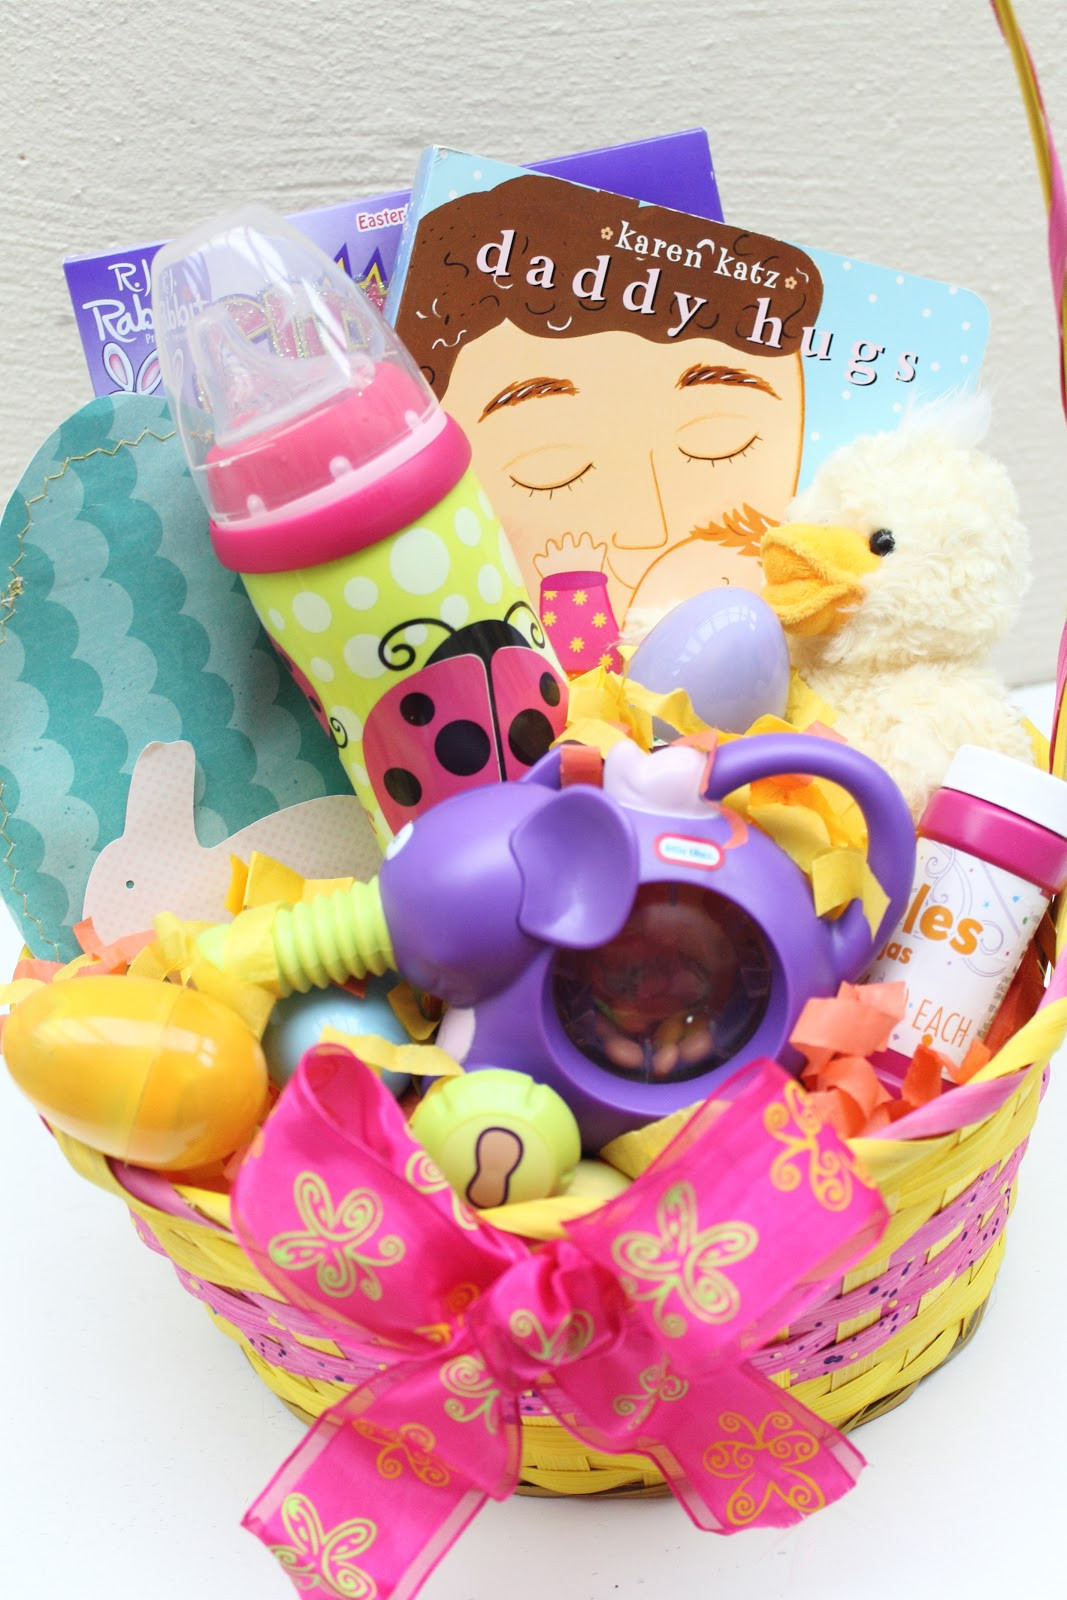 Easter Gift Ideas For Girlfriend  Make it Cozee Pool Fun Easter Baskets